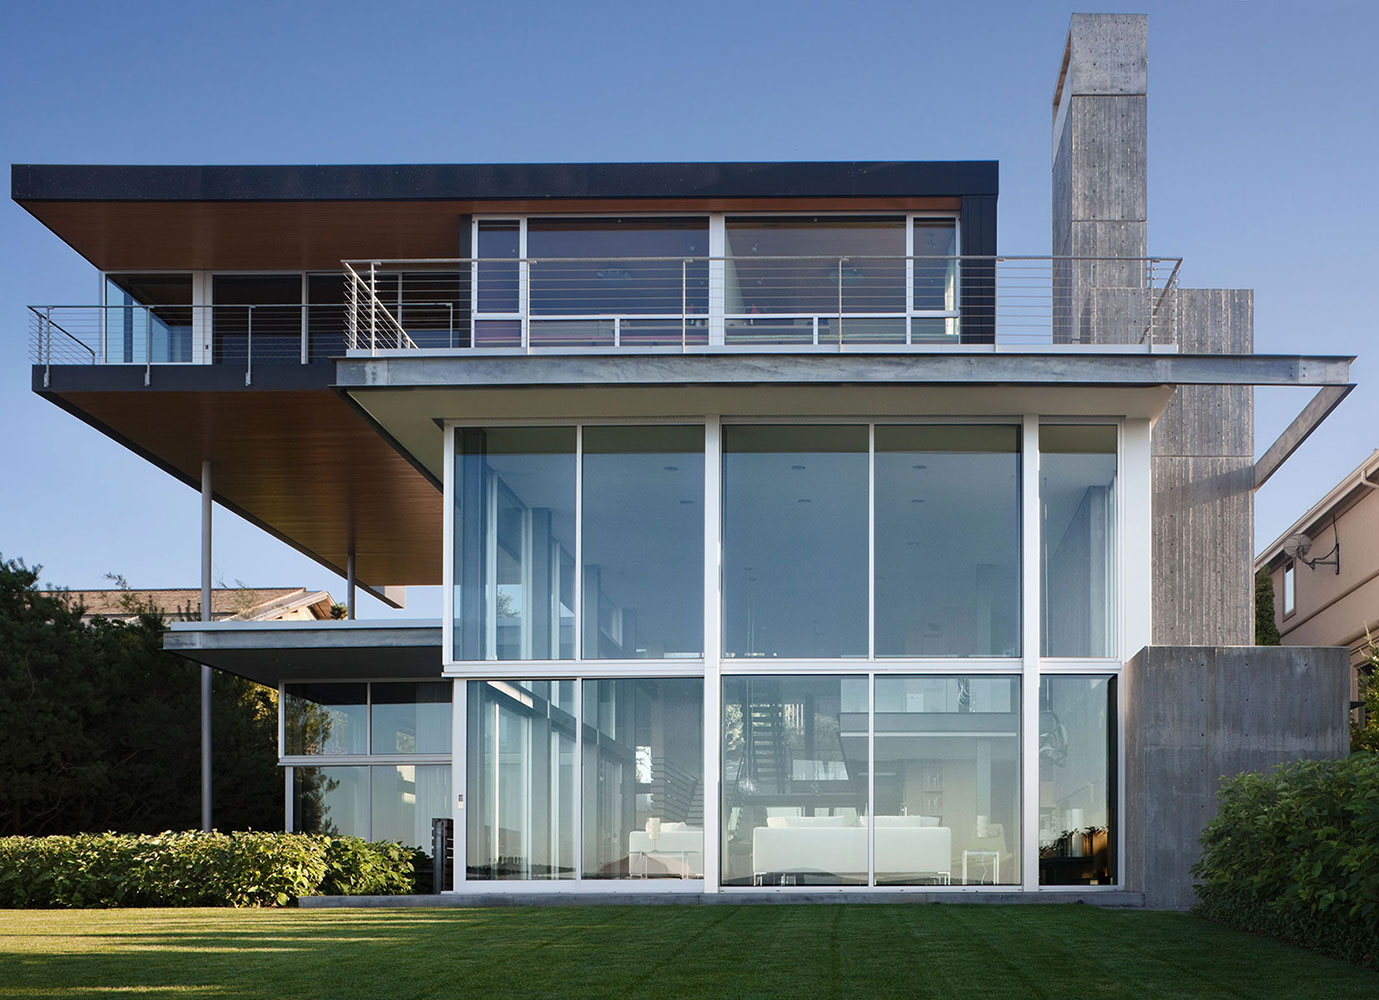 Modern Unusual Houses Graham Residence By E Cobb Architects Washington Usa Architecture